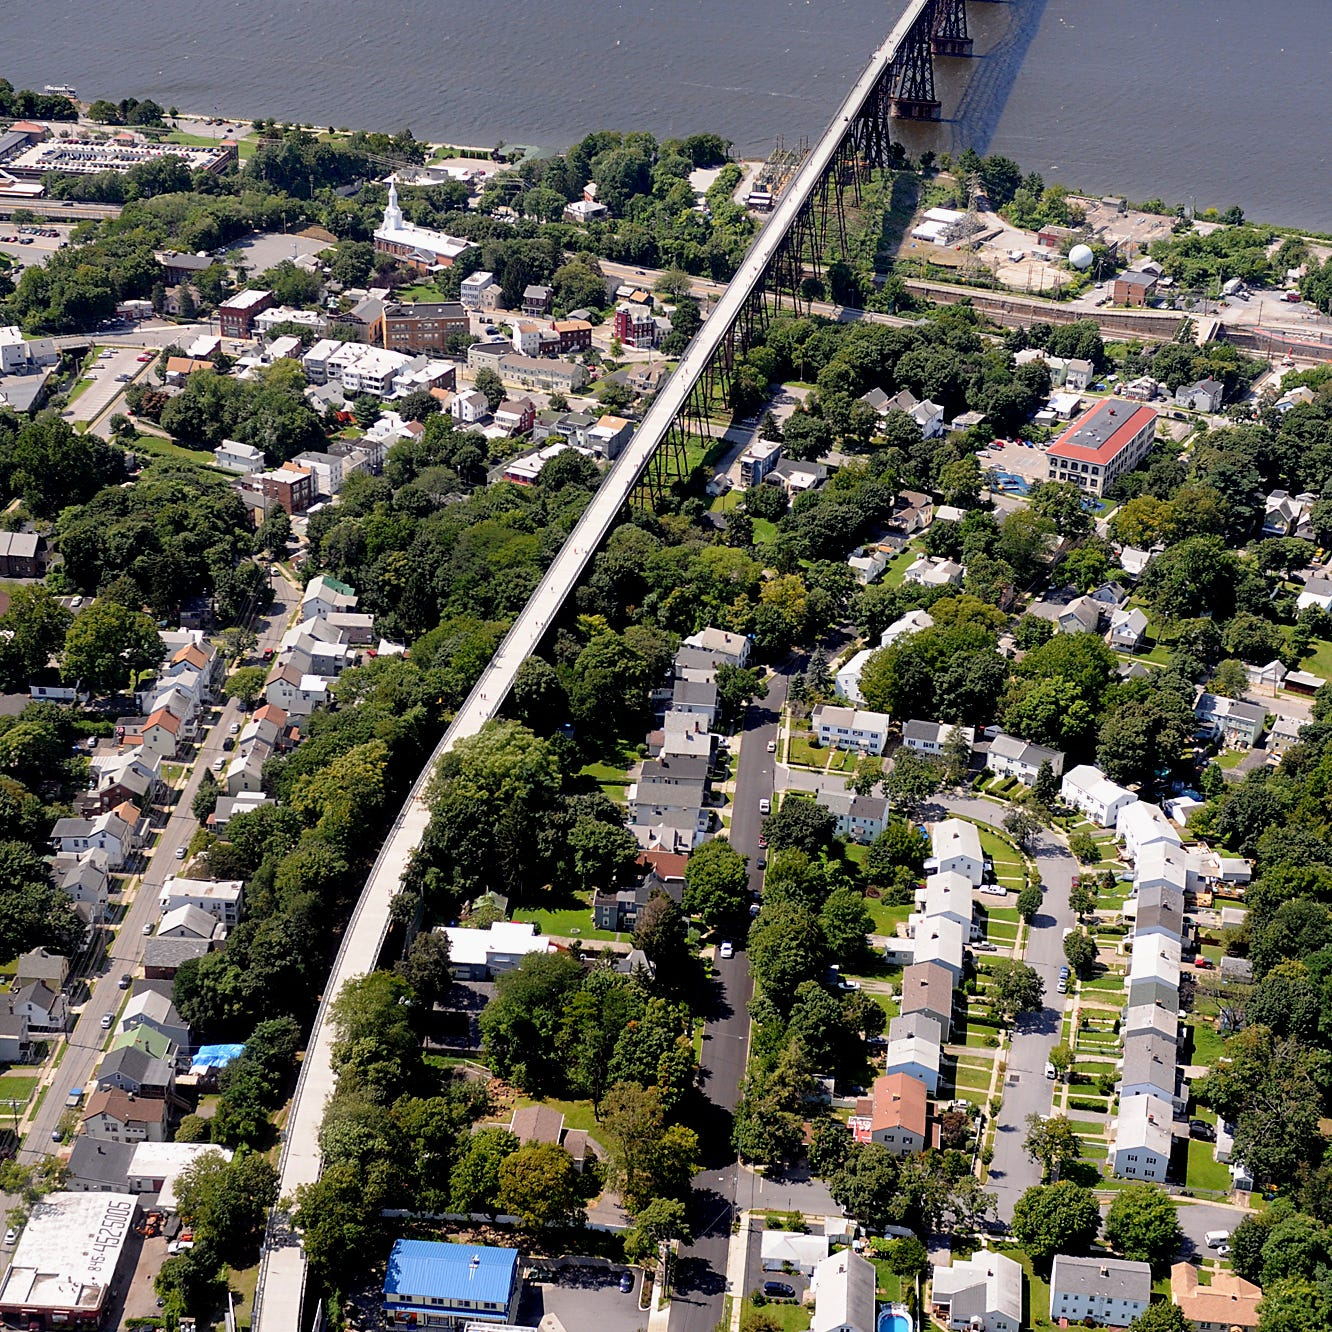 Walkway Over the Hudson: Has park improved quality of life locally?